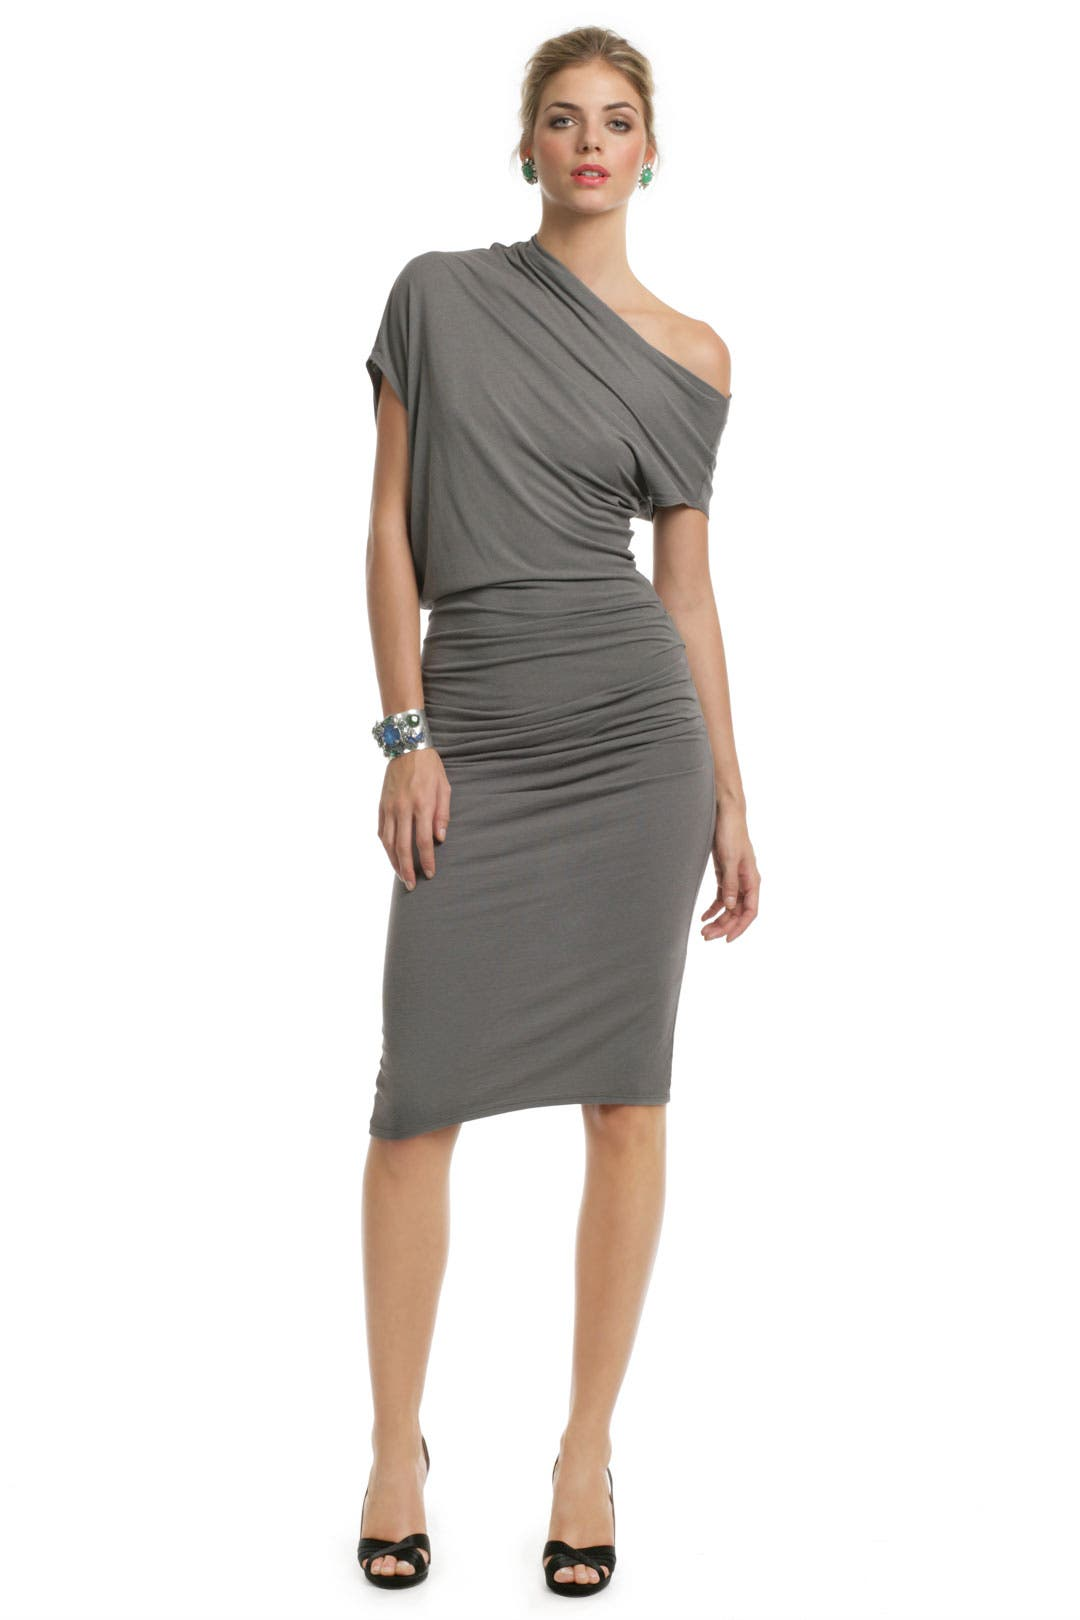 Oasis Dress by Helmut Lang